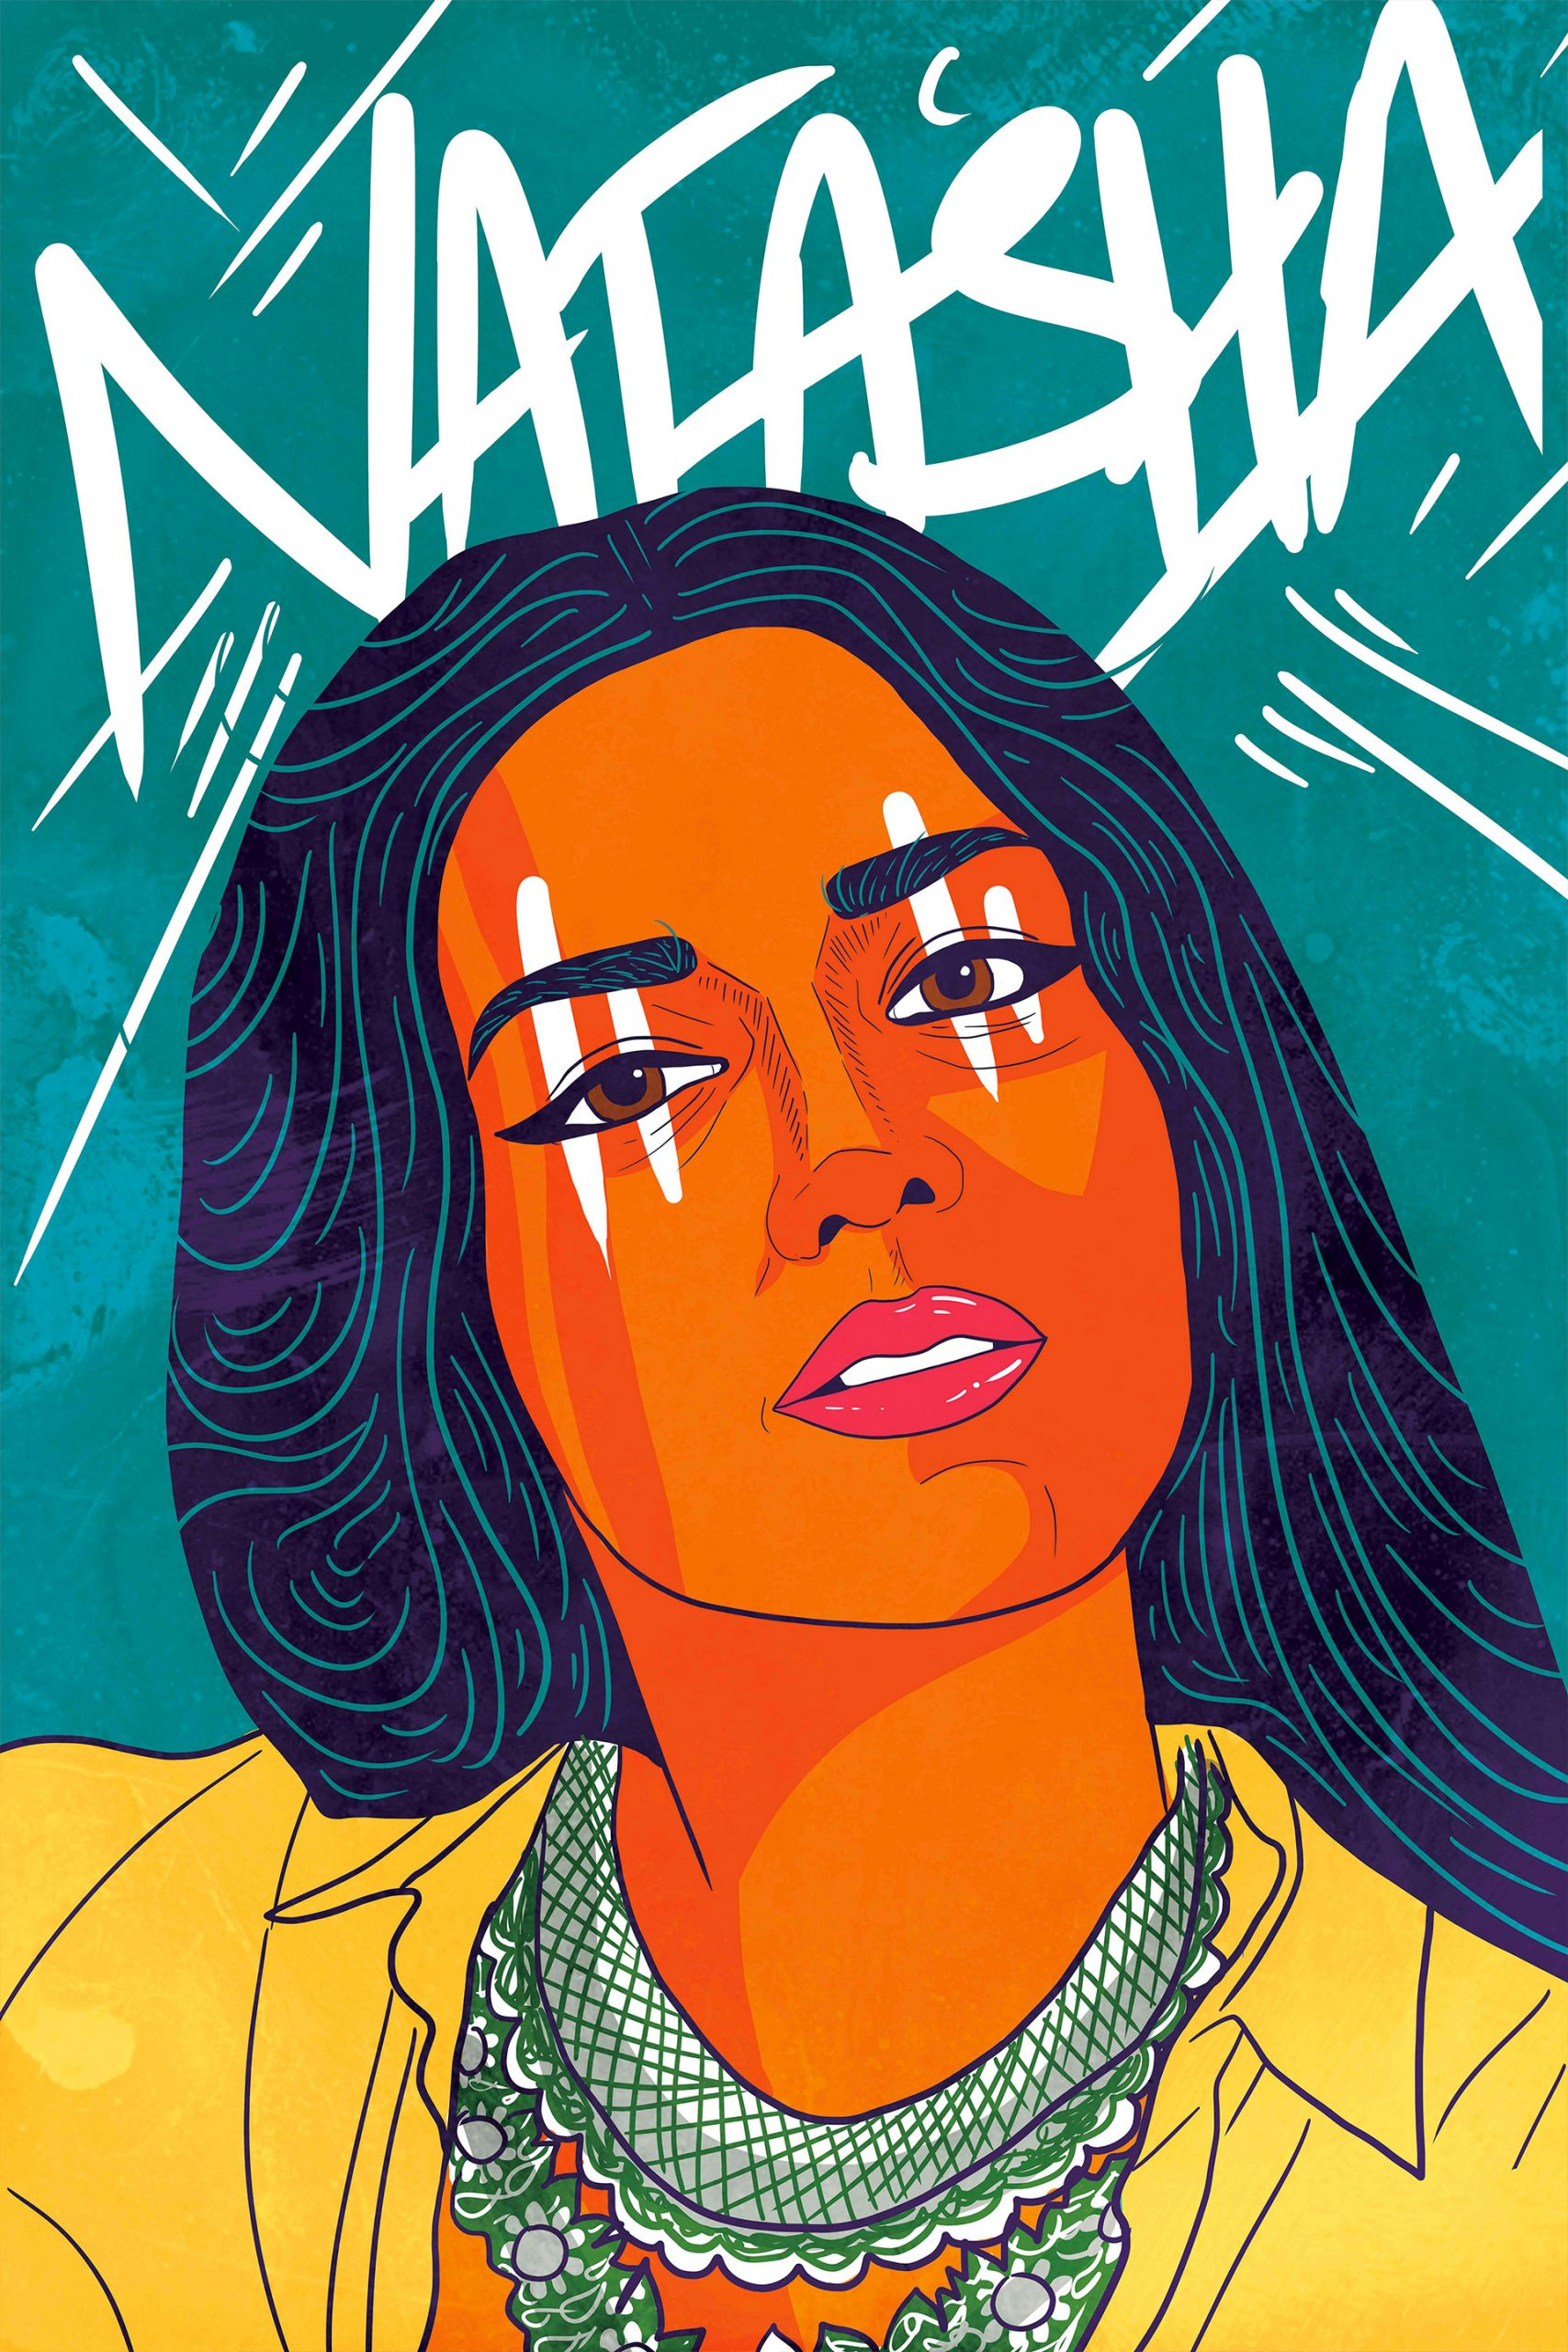 Colorful Illustrated Portraits By Amara Sikander Daily Design Inspiration For Creatives Inspiration Grid